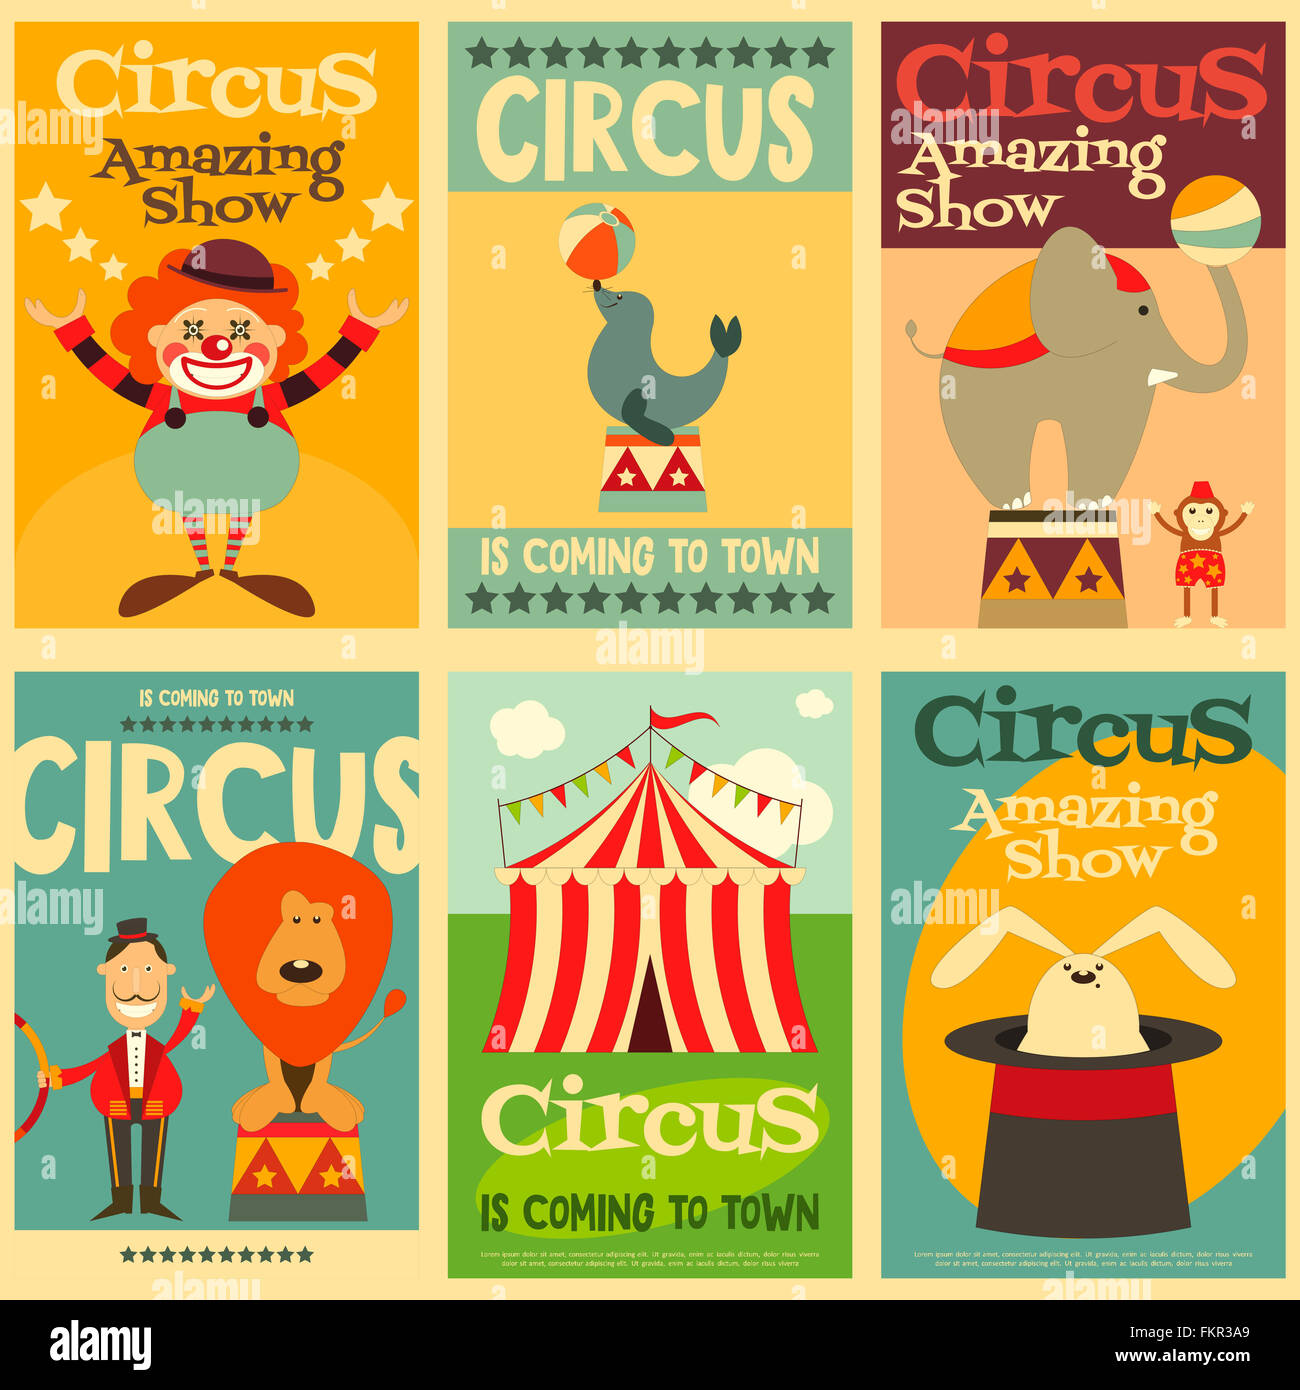 Circus Entertainment Posters Retro Set. Cartoon Style. Circus Animals and Characters. - Stock Image